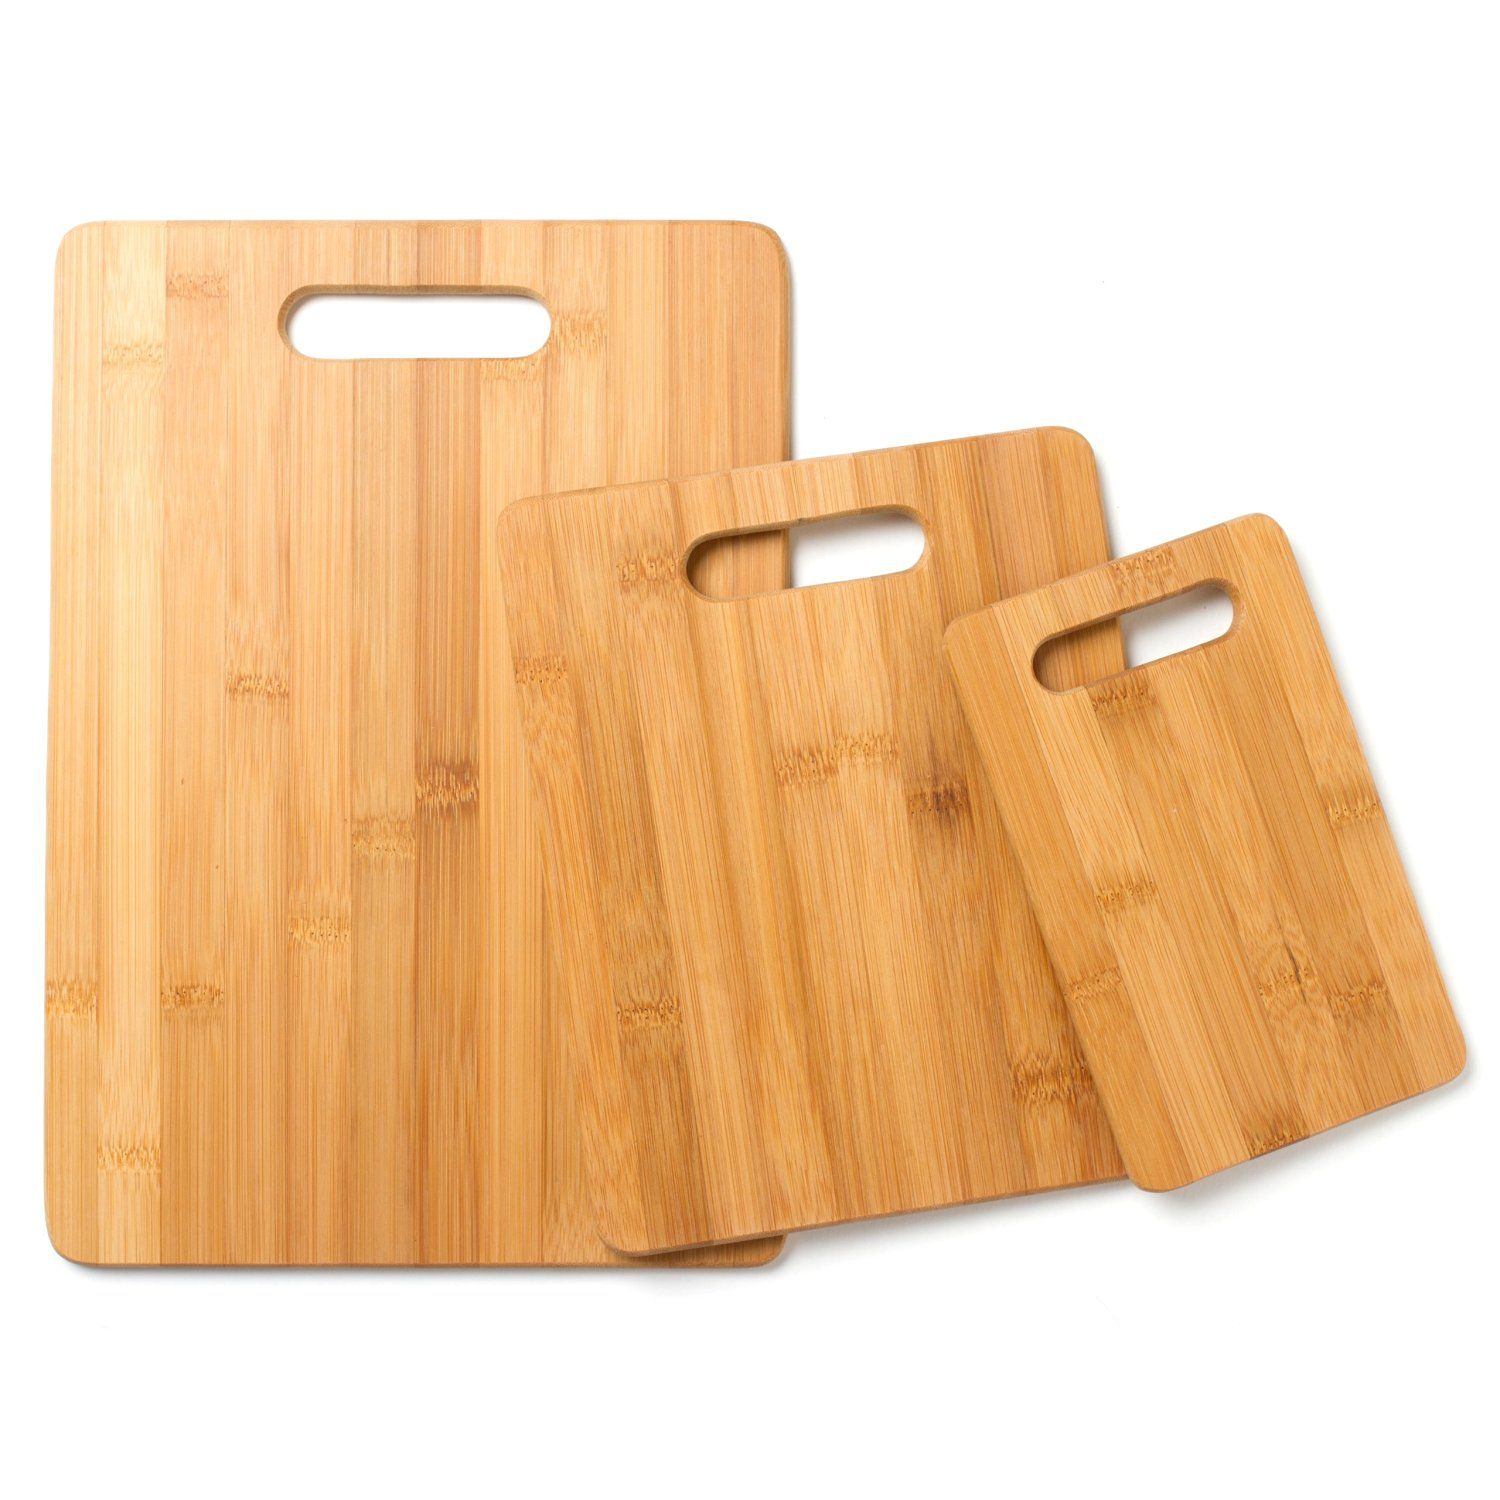 Cook's Corner 3-Piece Bamboo Cutting Board Set